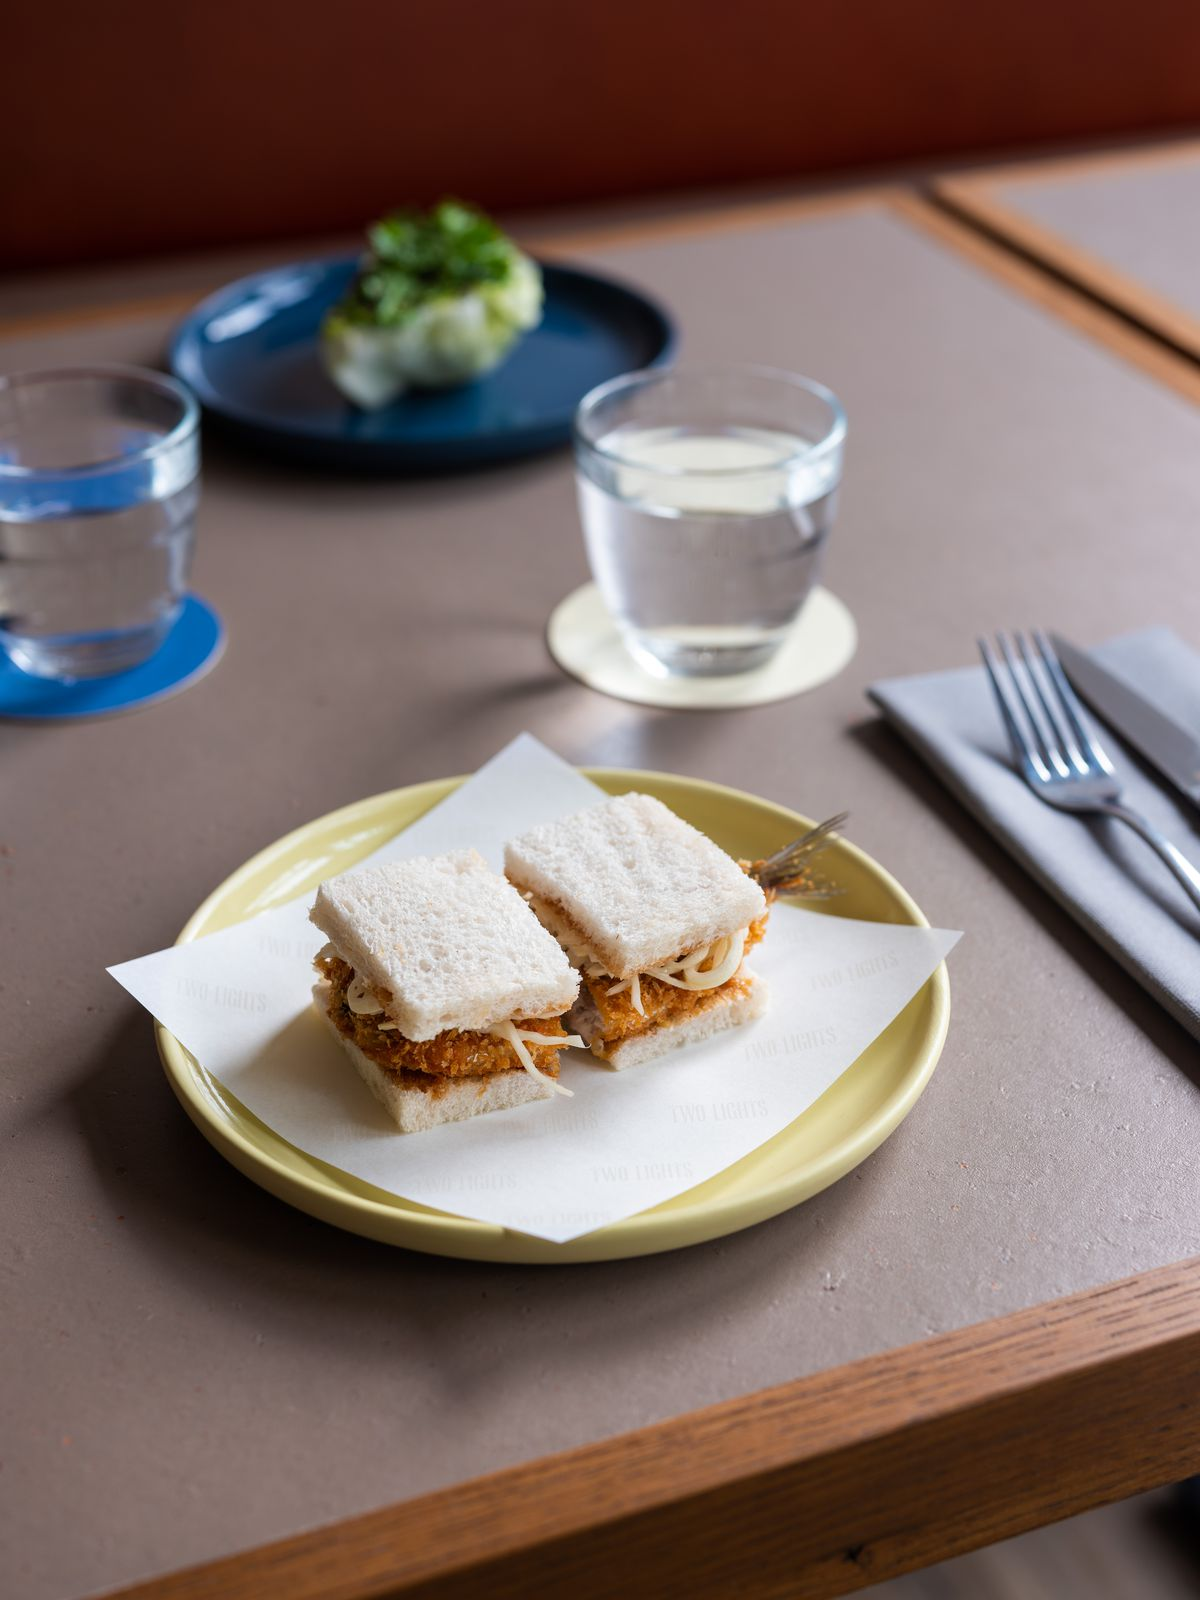 On trend: Sardine 'katsu' sandwich at Two Lights by Chase Lovecky in Shoreditch